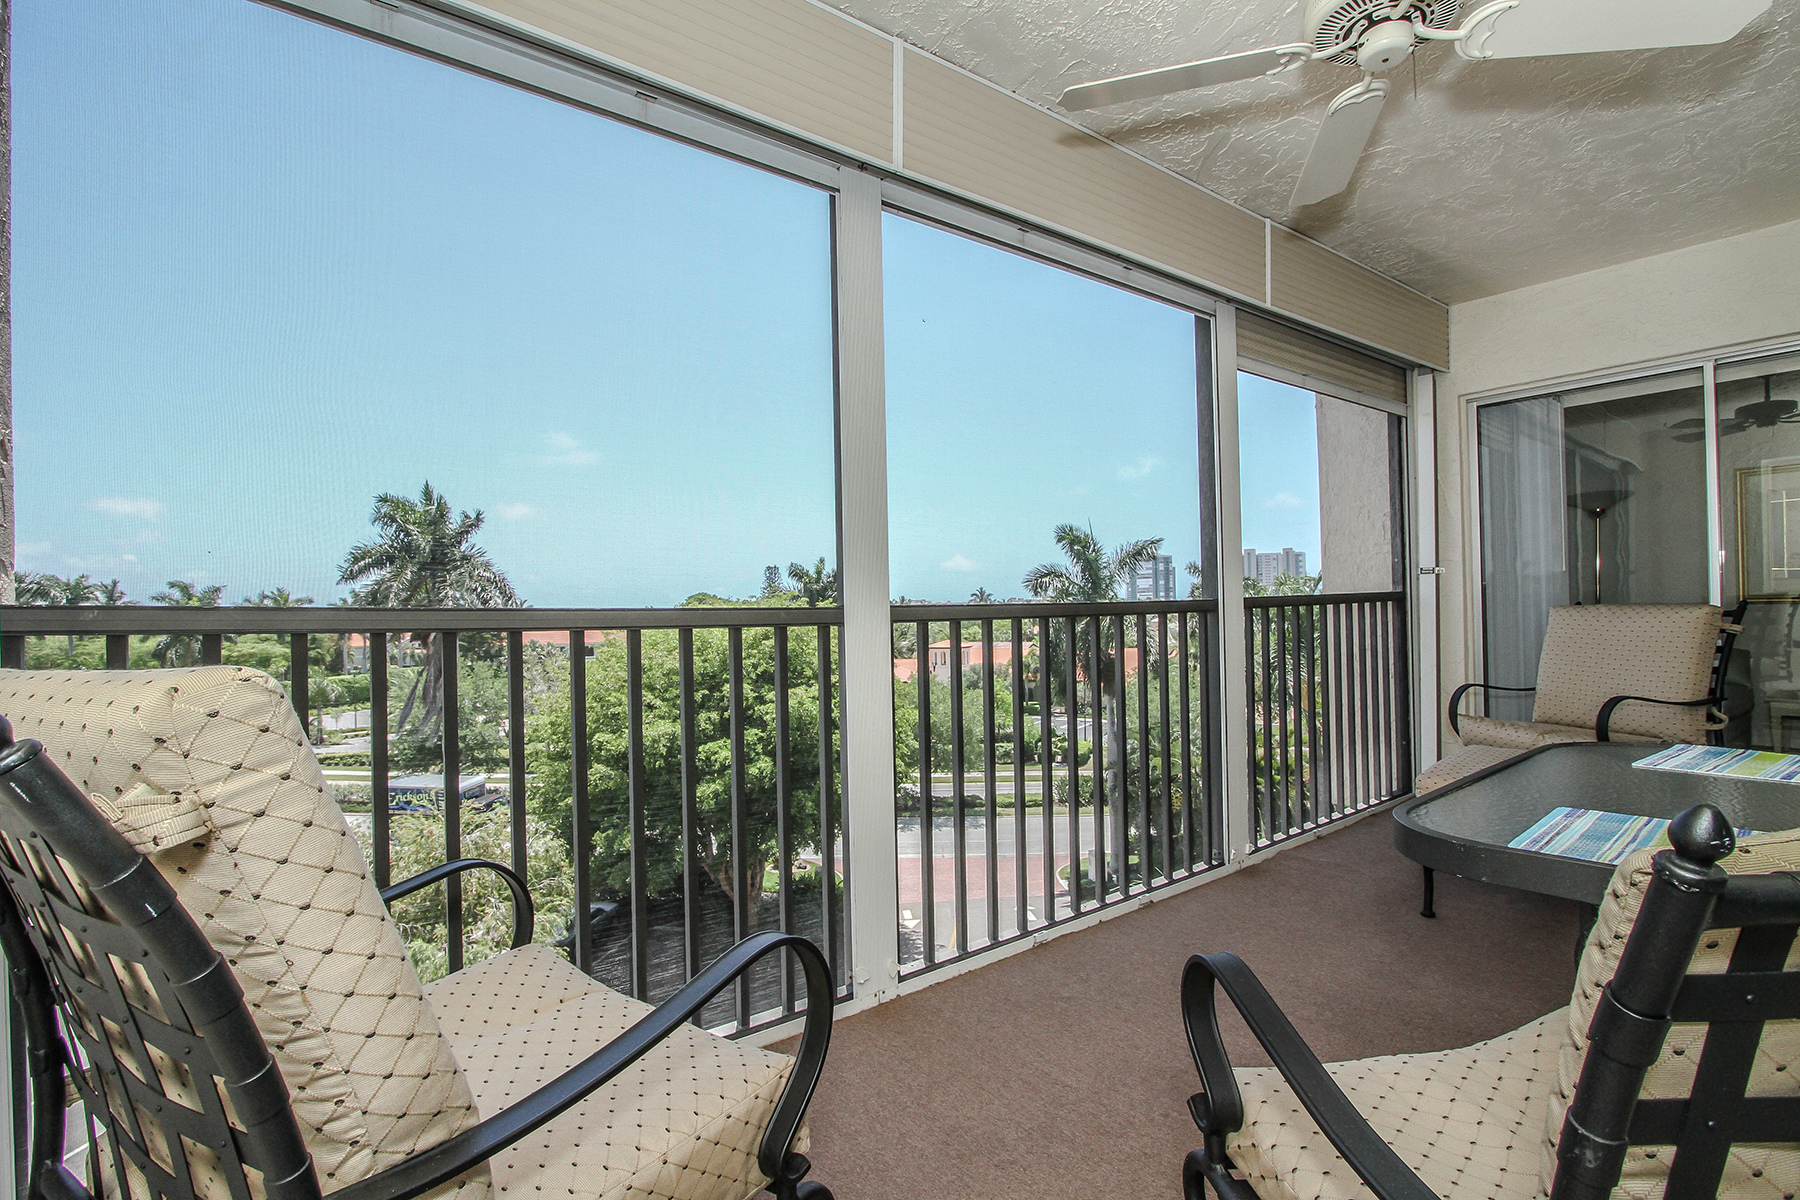 Condominium for Rent at VENETIAN BAYVIEW - VENETIAN BAYVIEW 555 Park Shore Dr 513, Naples, Florida 34103 United States